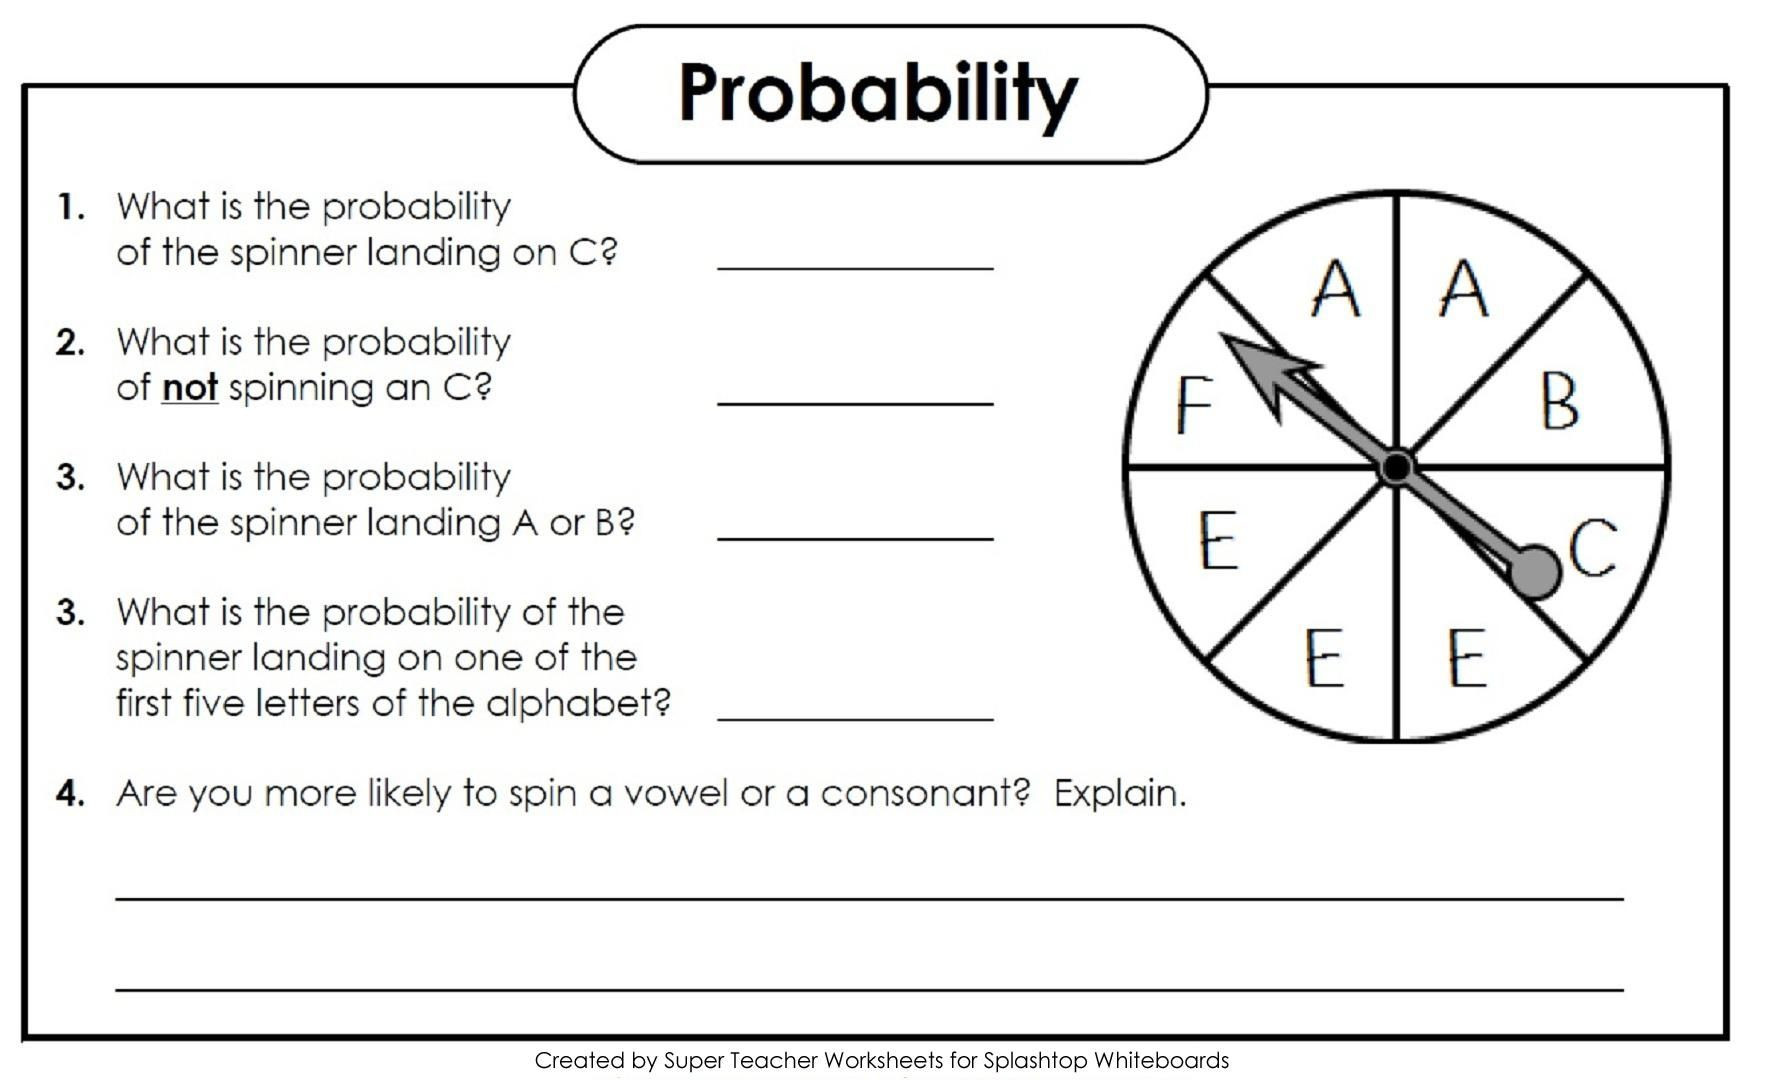 Probability Worksheet 4th Grade 15 High School Geometrie Arbeitsblätter Pdf